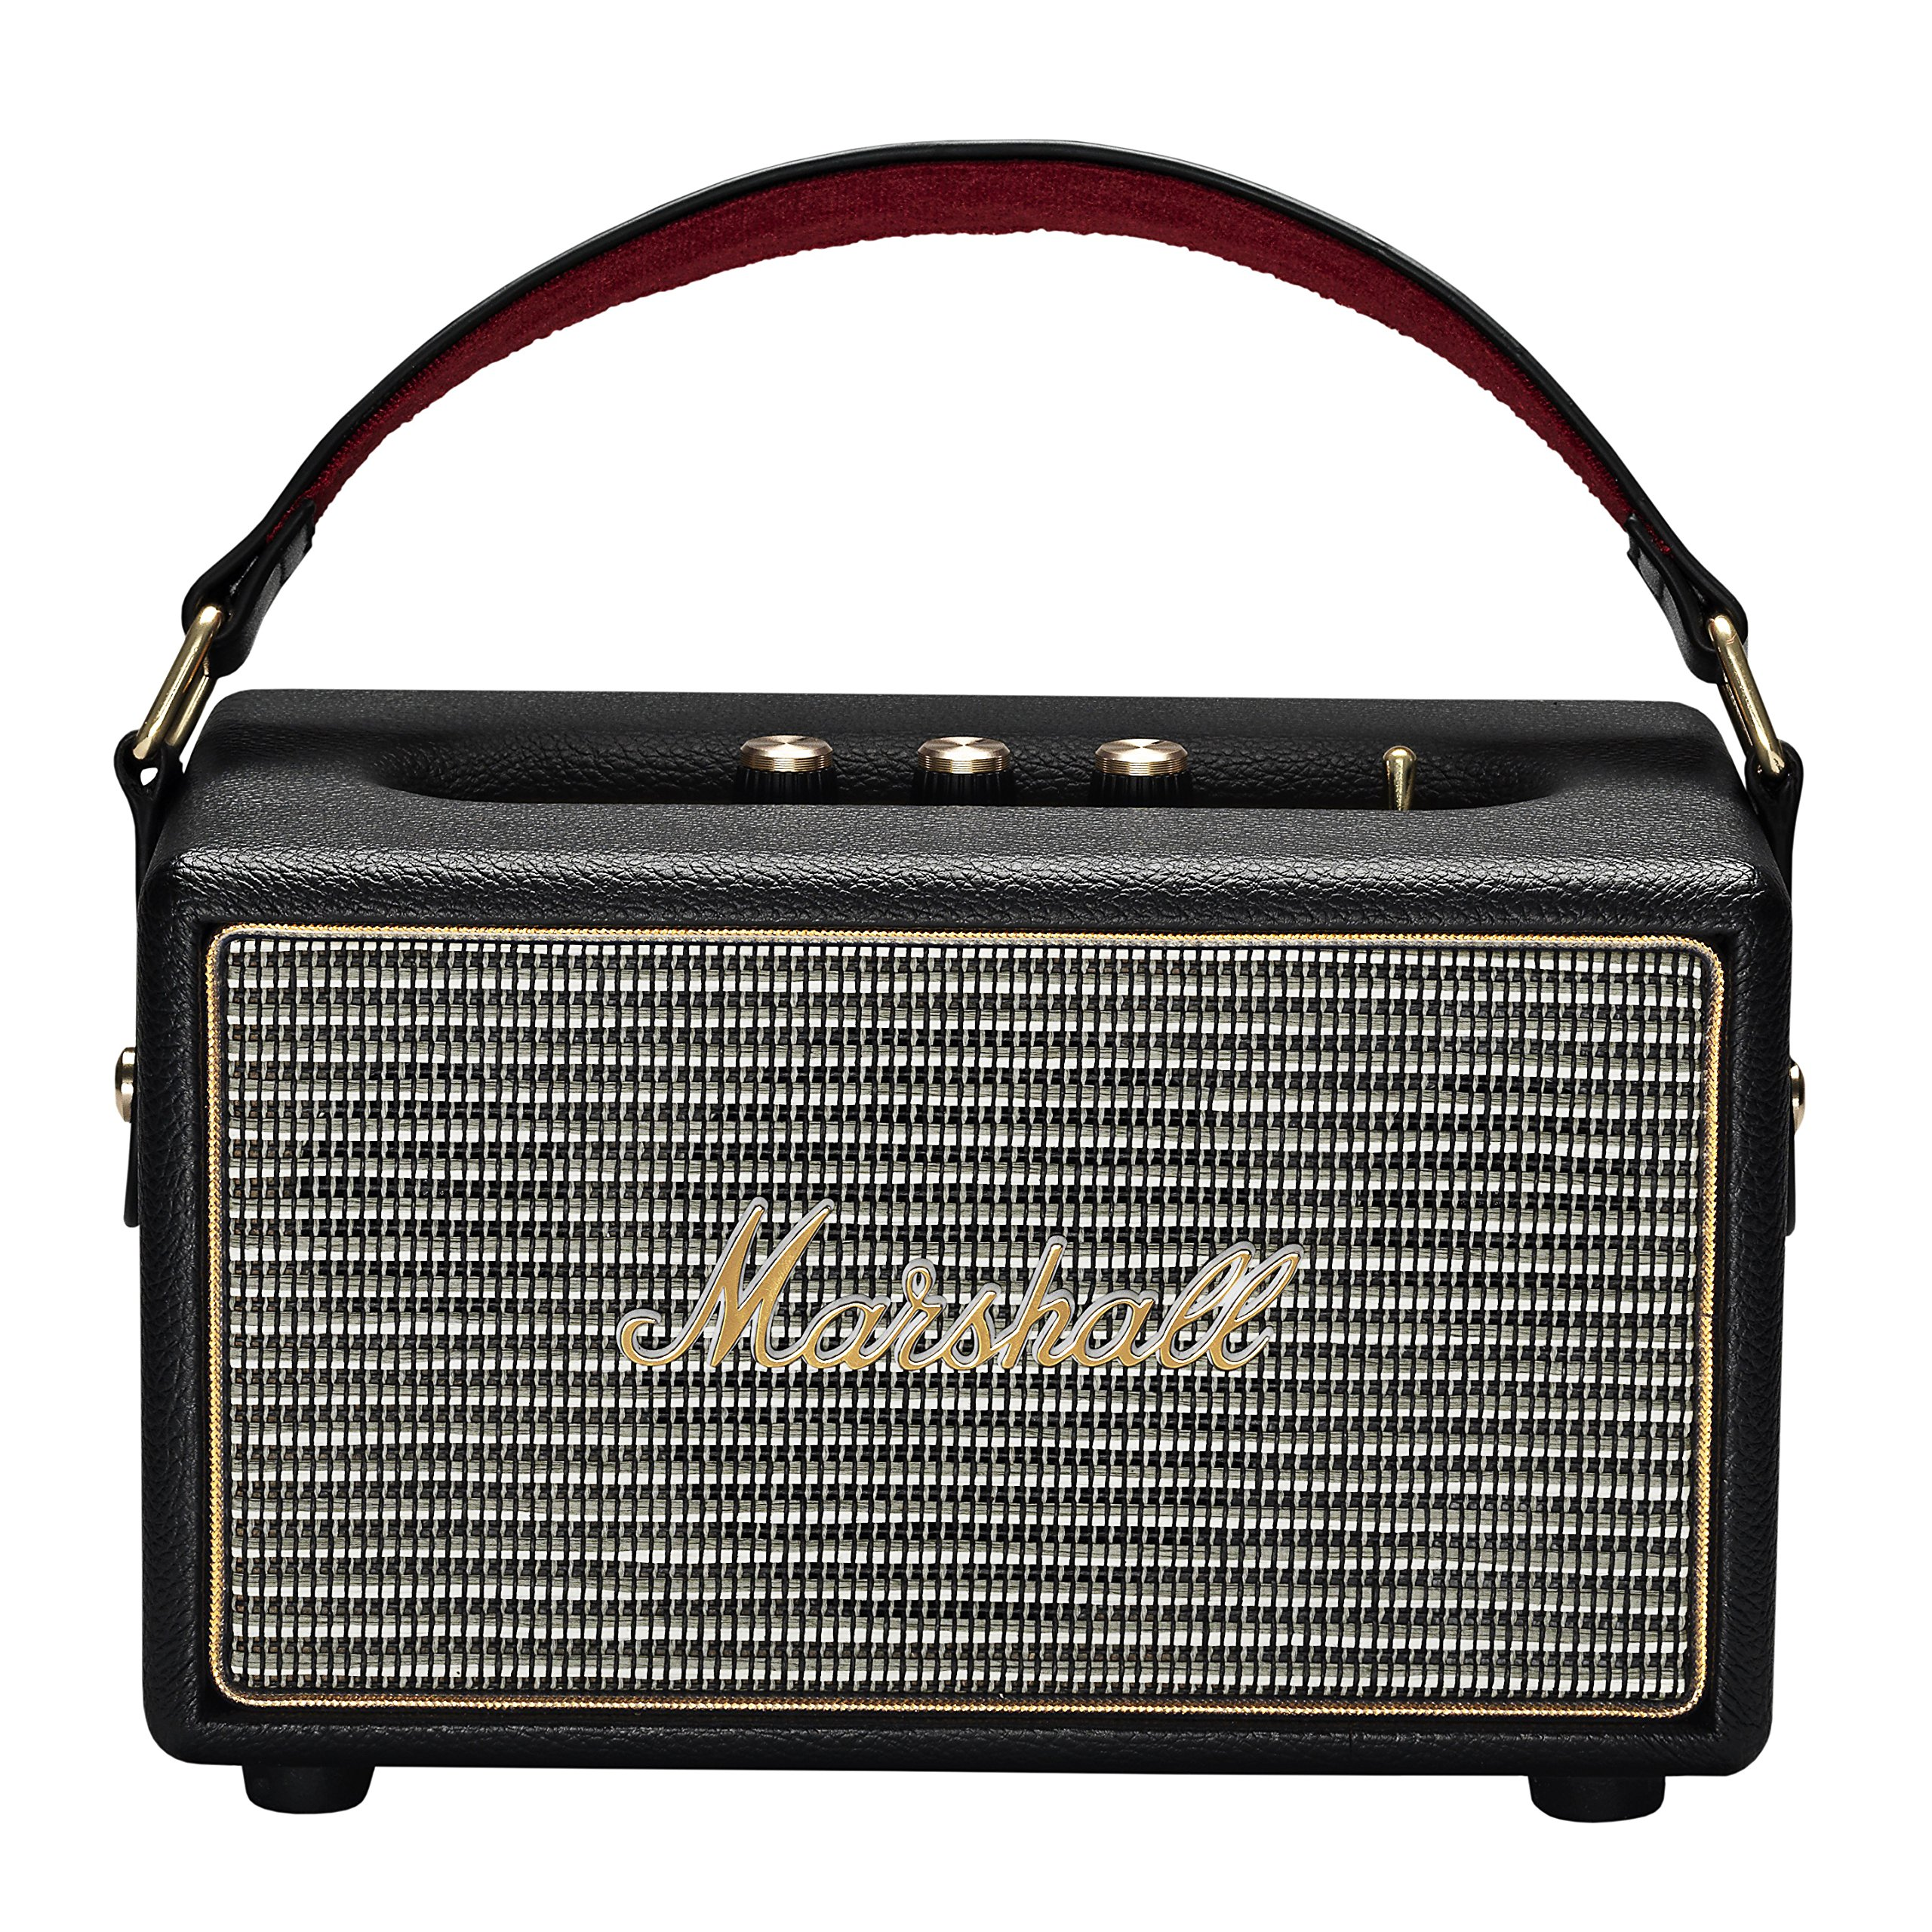 Marshall Kilburn Portable Bluetooth Speaker, Black (4091189) by Marshall